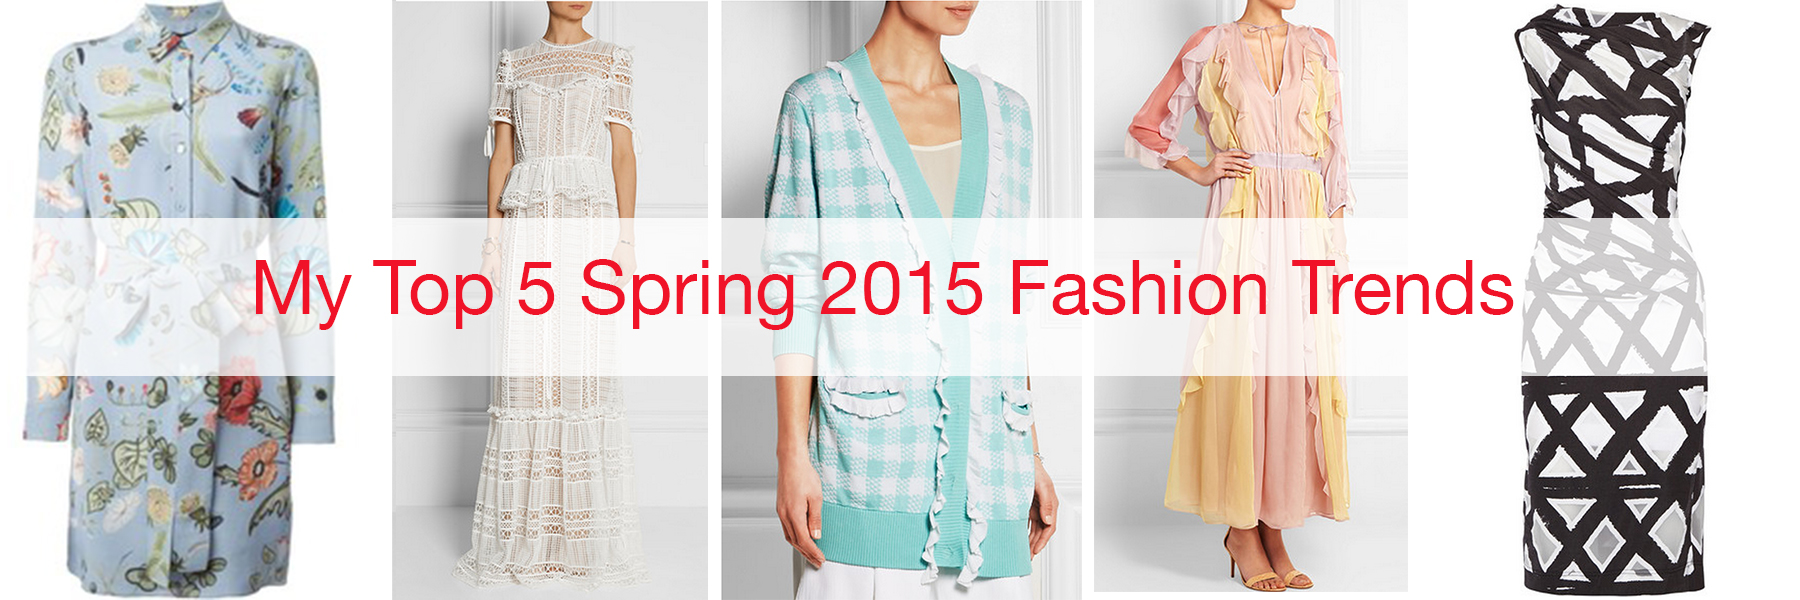 My Top 5 Fashion Trends of Spring 2015